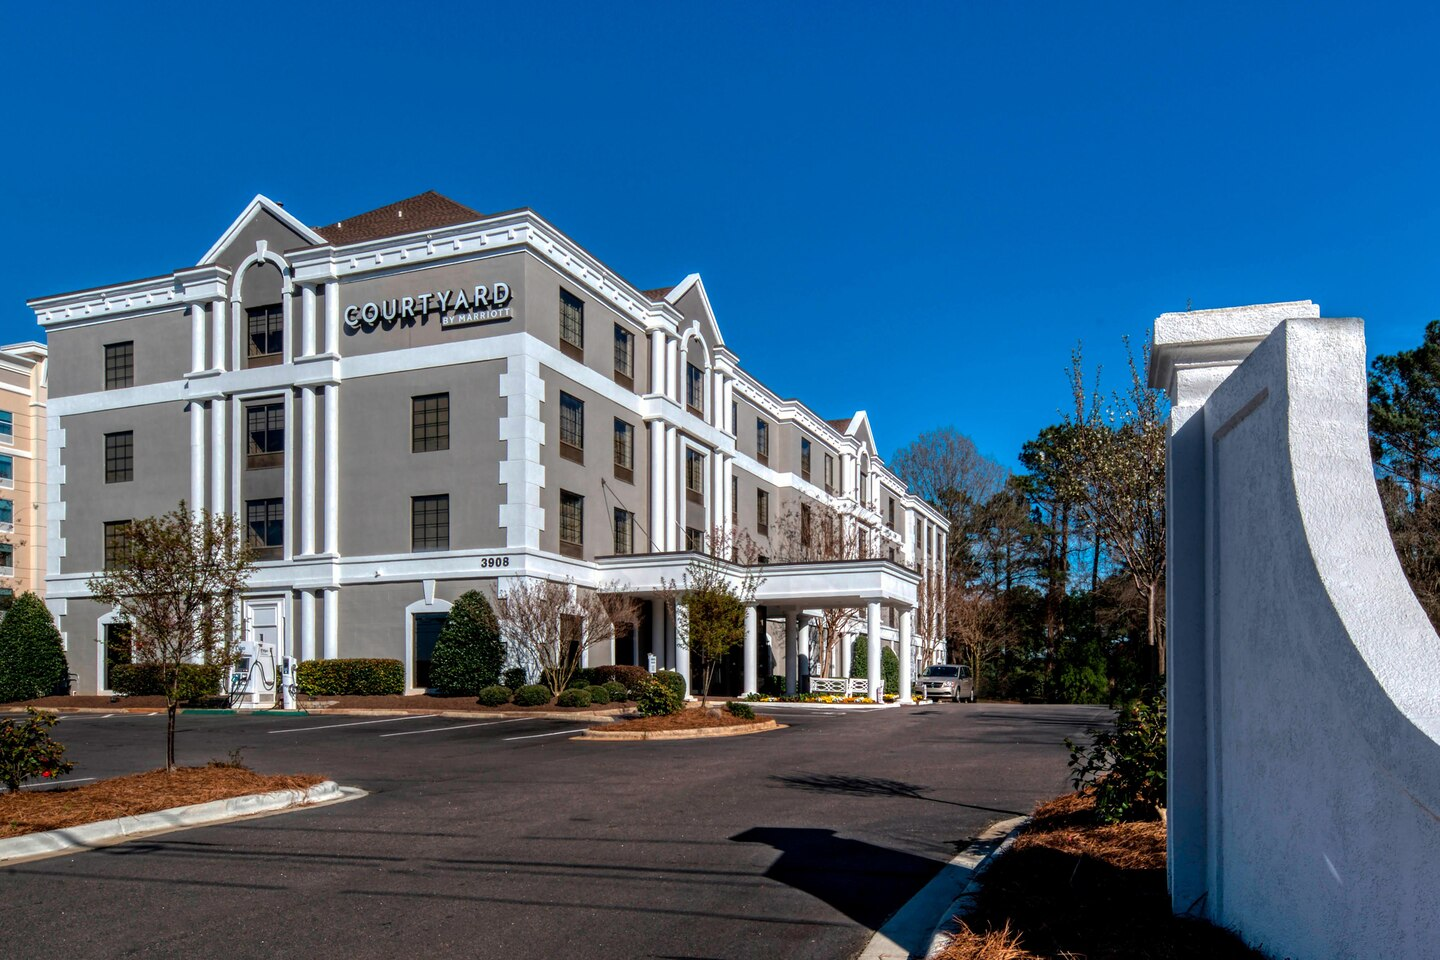 Courtyard by Marriott Crabtree - Raleigh, NC